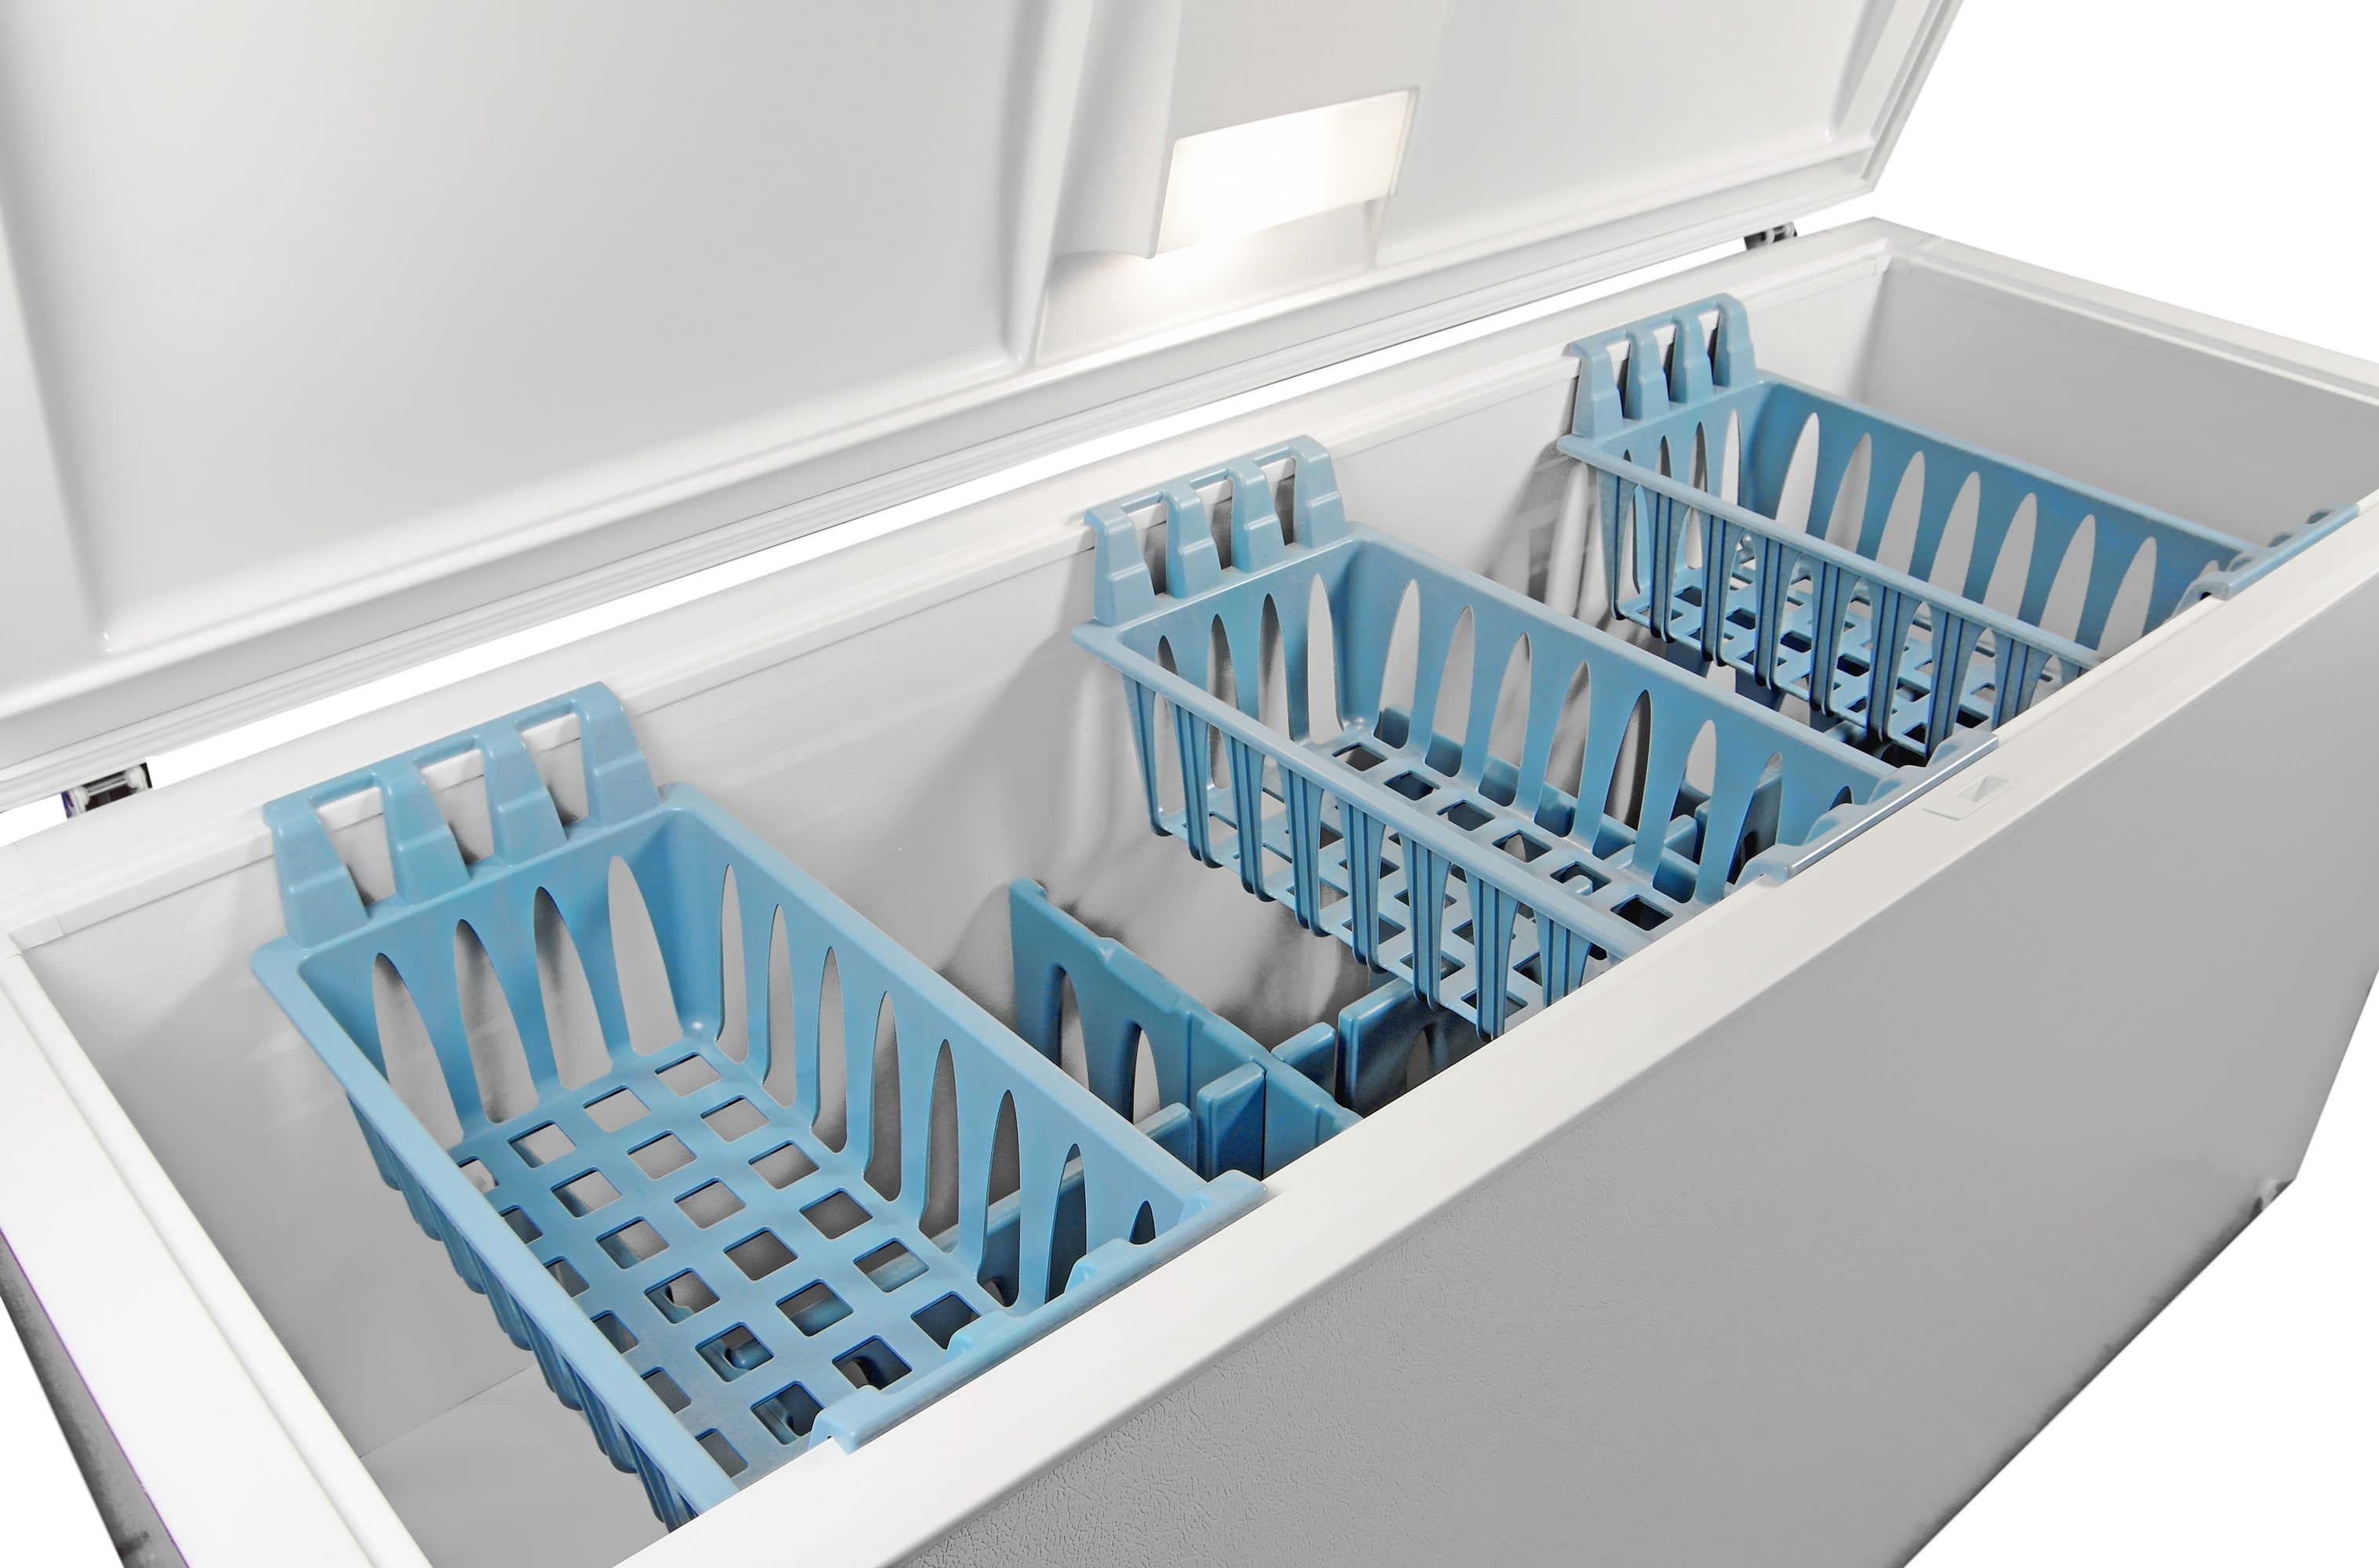 The Frigidaire Gallery FGCH25M8LW's three vibrantly blue bins provide sliding storage for food kept at the top.